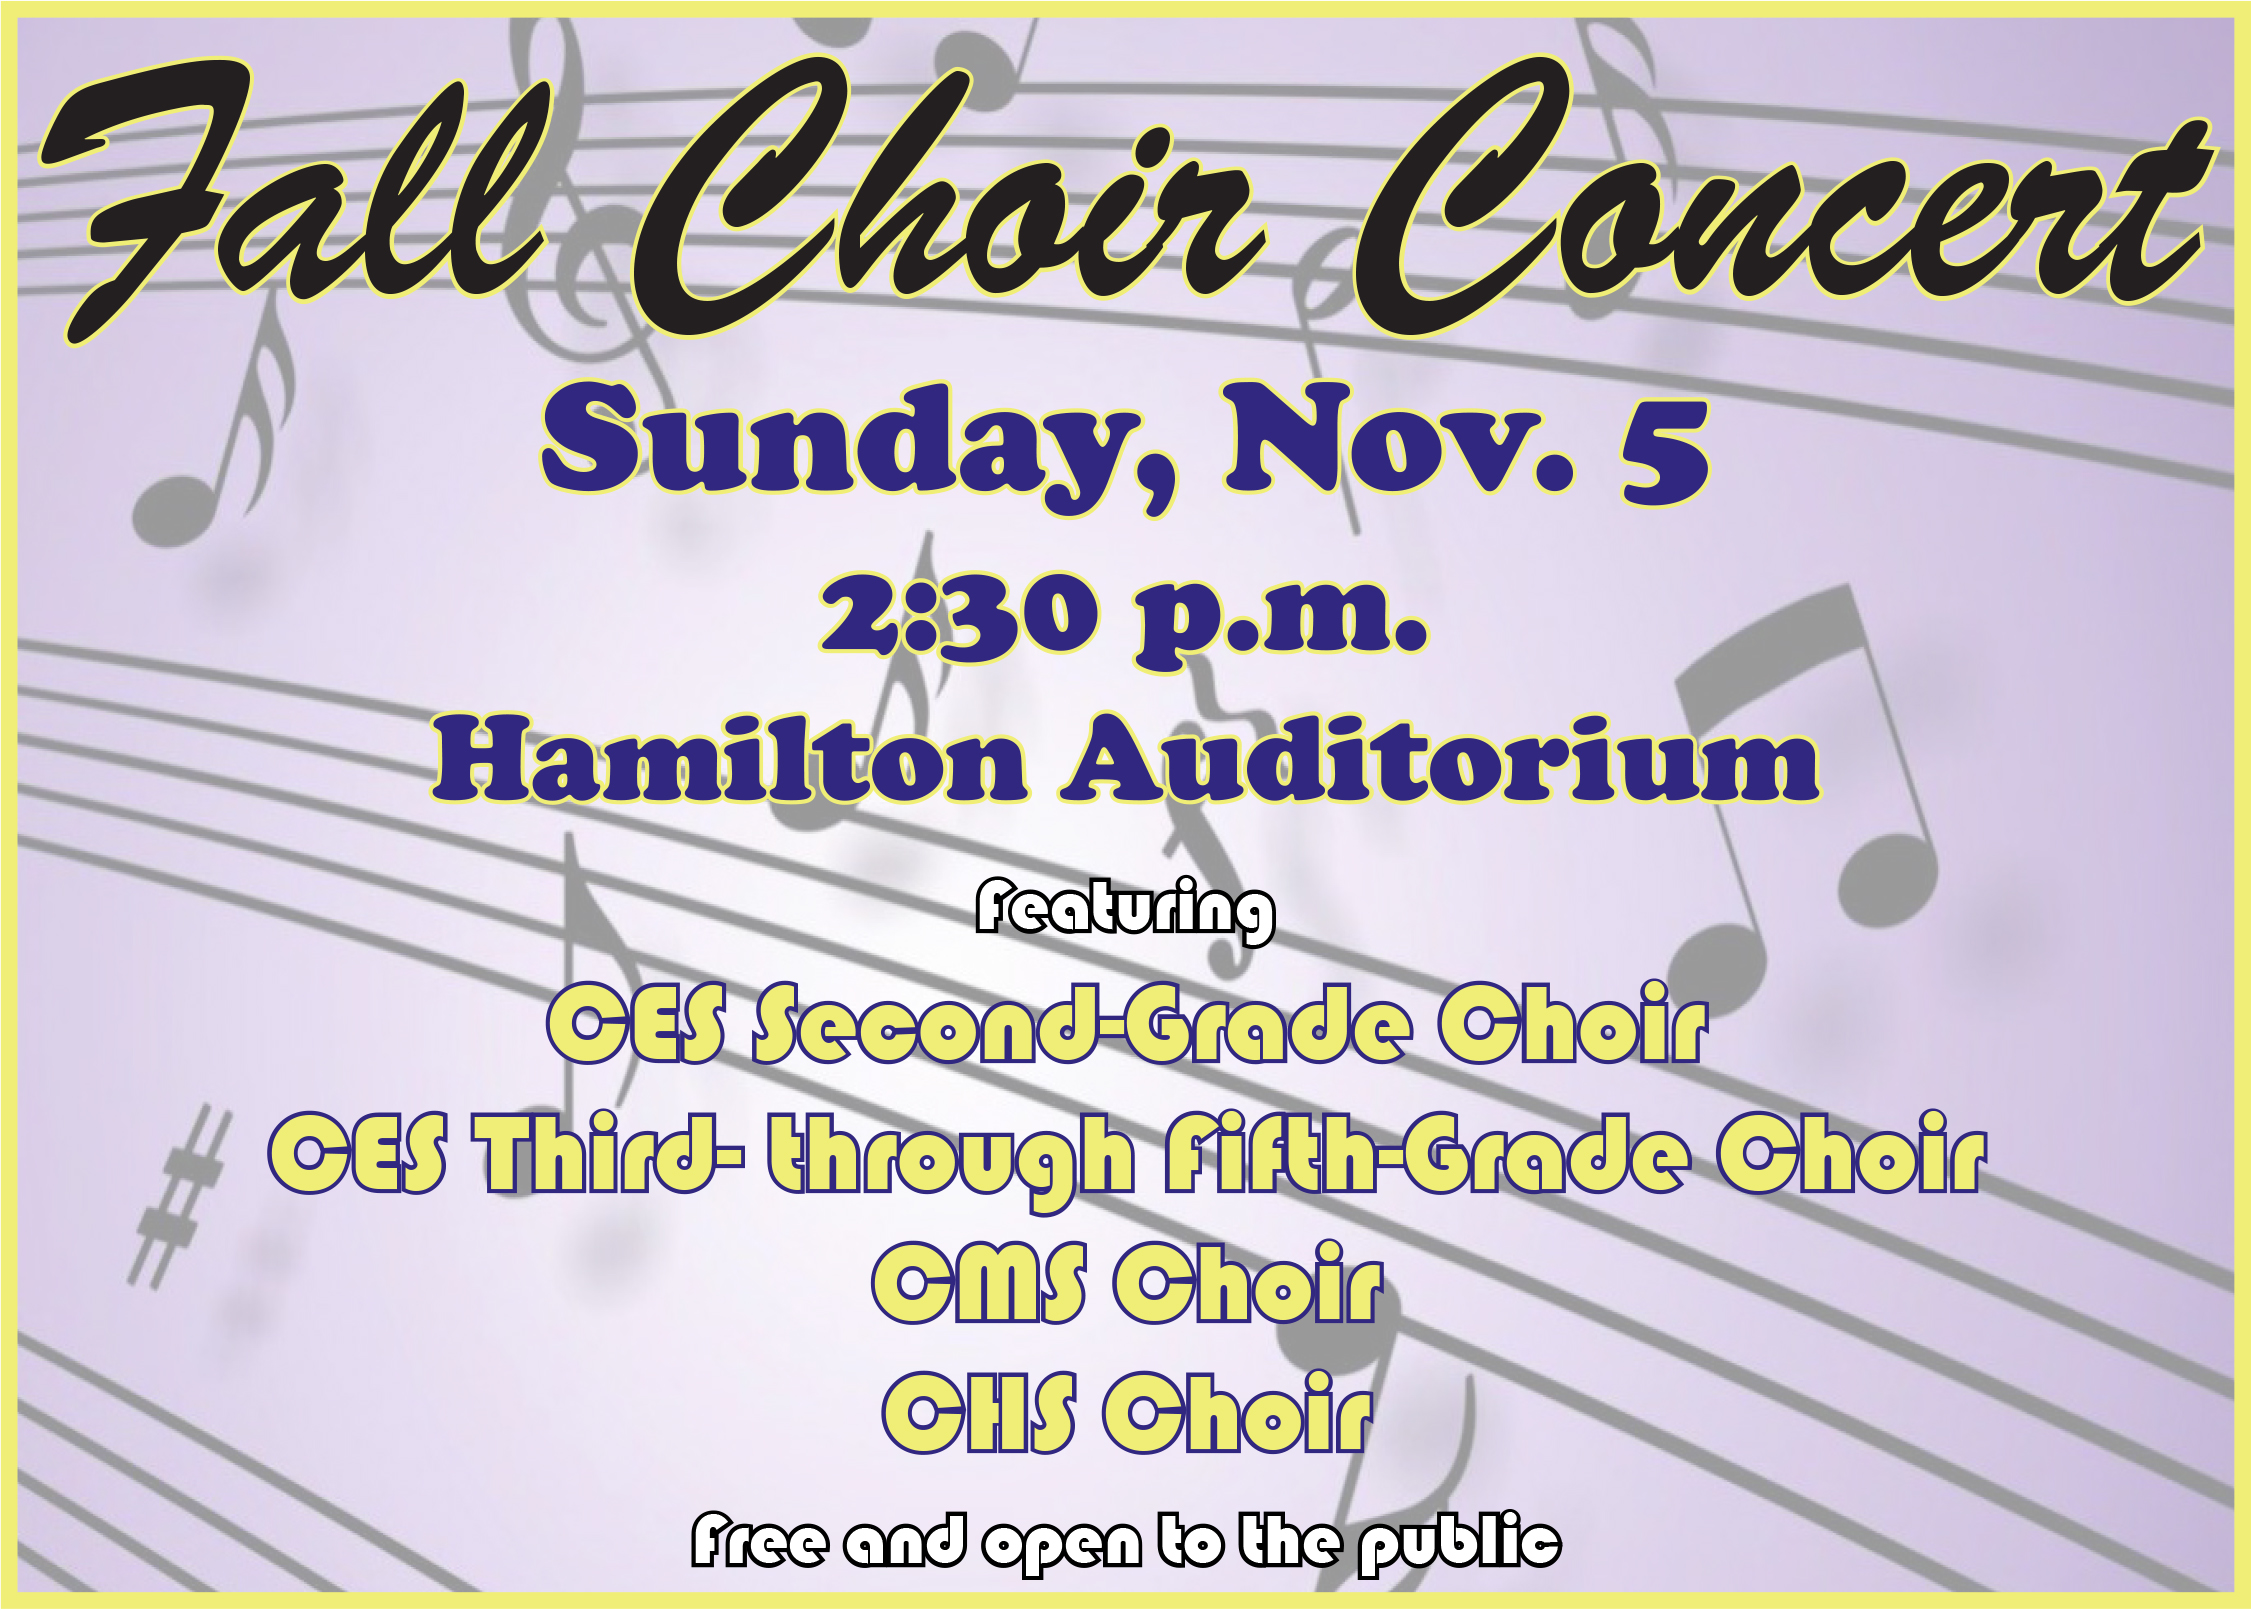 Campbellsville elementary, middle and high school choirs will present a fall concert on Sunday, Nov. 5.    The concert will begin at 2:30 p.m. at Hamilton Auditorium on the Campbellsville High School campus.    The performance is free and open to the public.